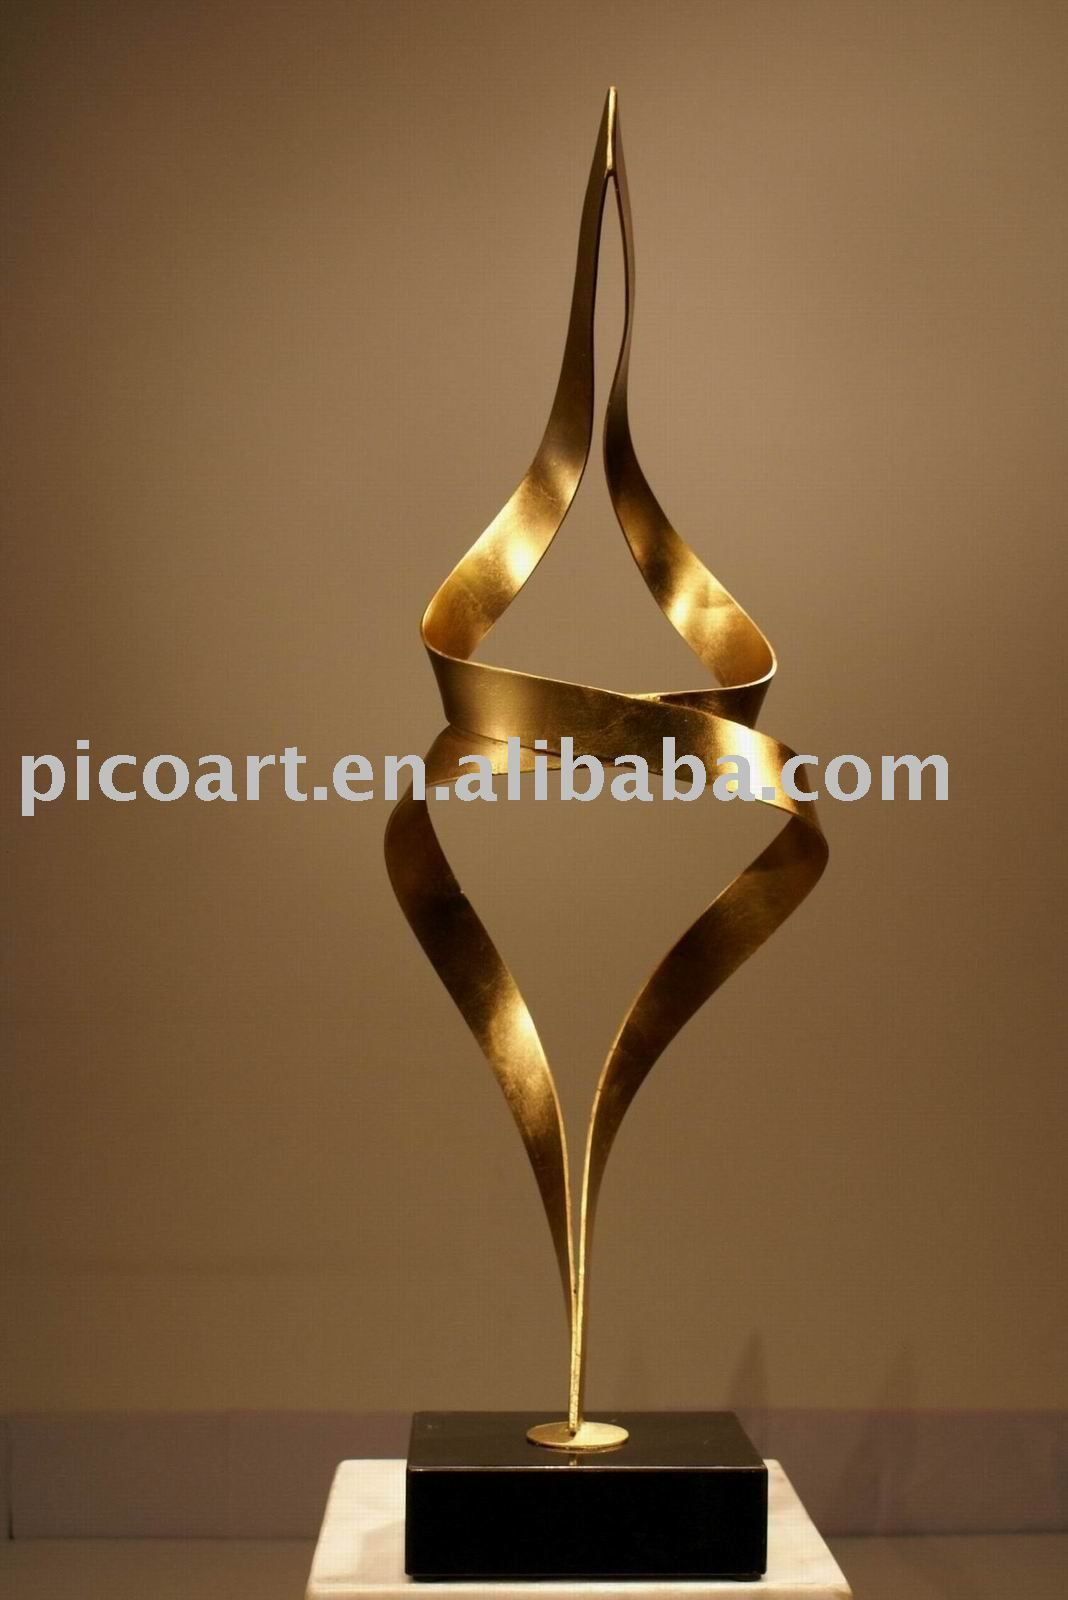 Copper Sculpture Modern Art Home Decor Product On Alibaba